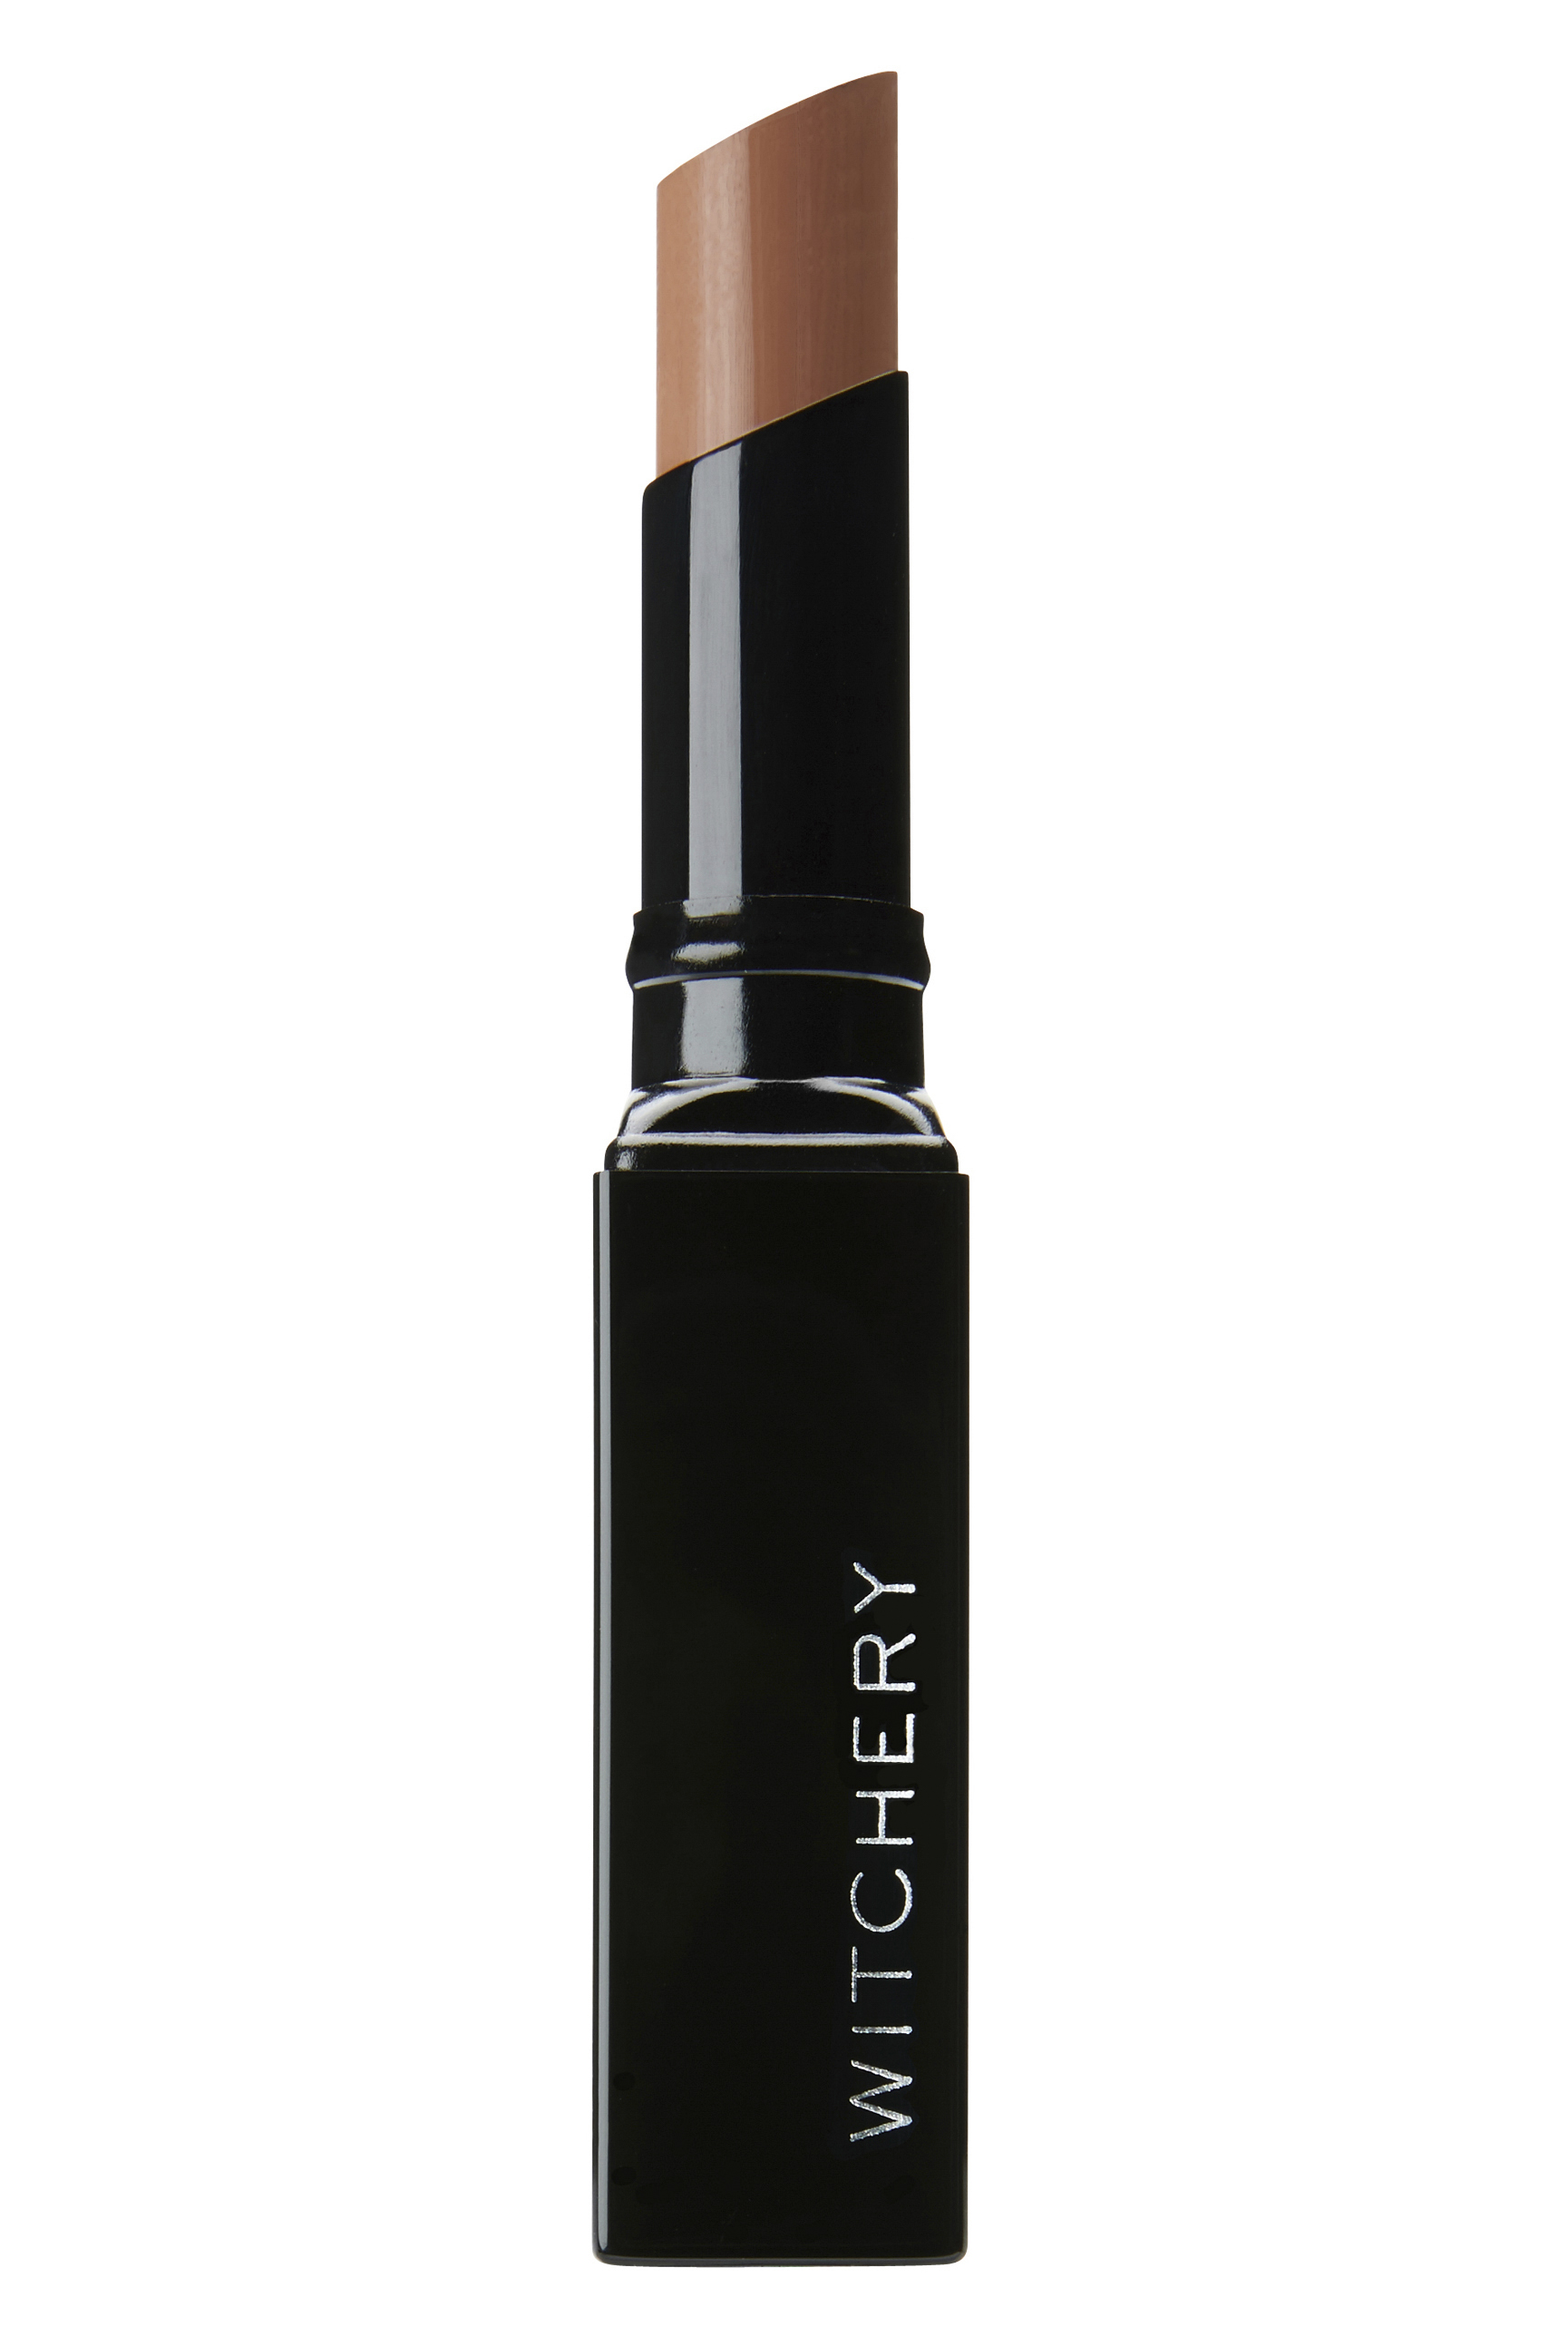 60172148_witchery-beauty-lipstick-in-caramel-rrp18-90